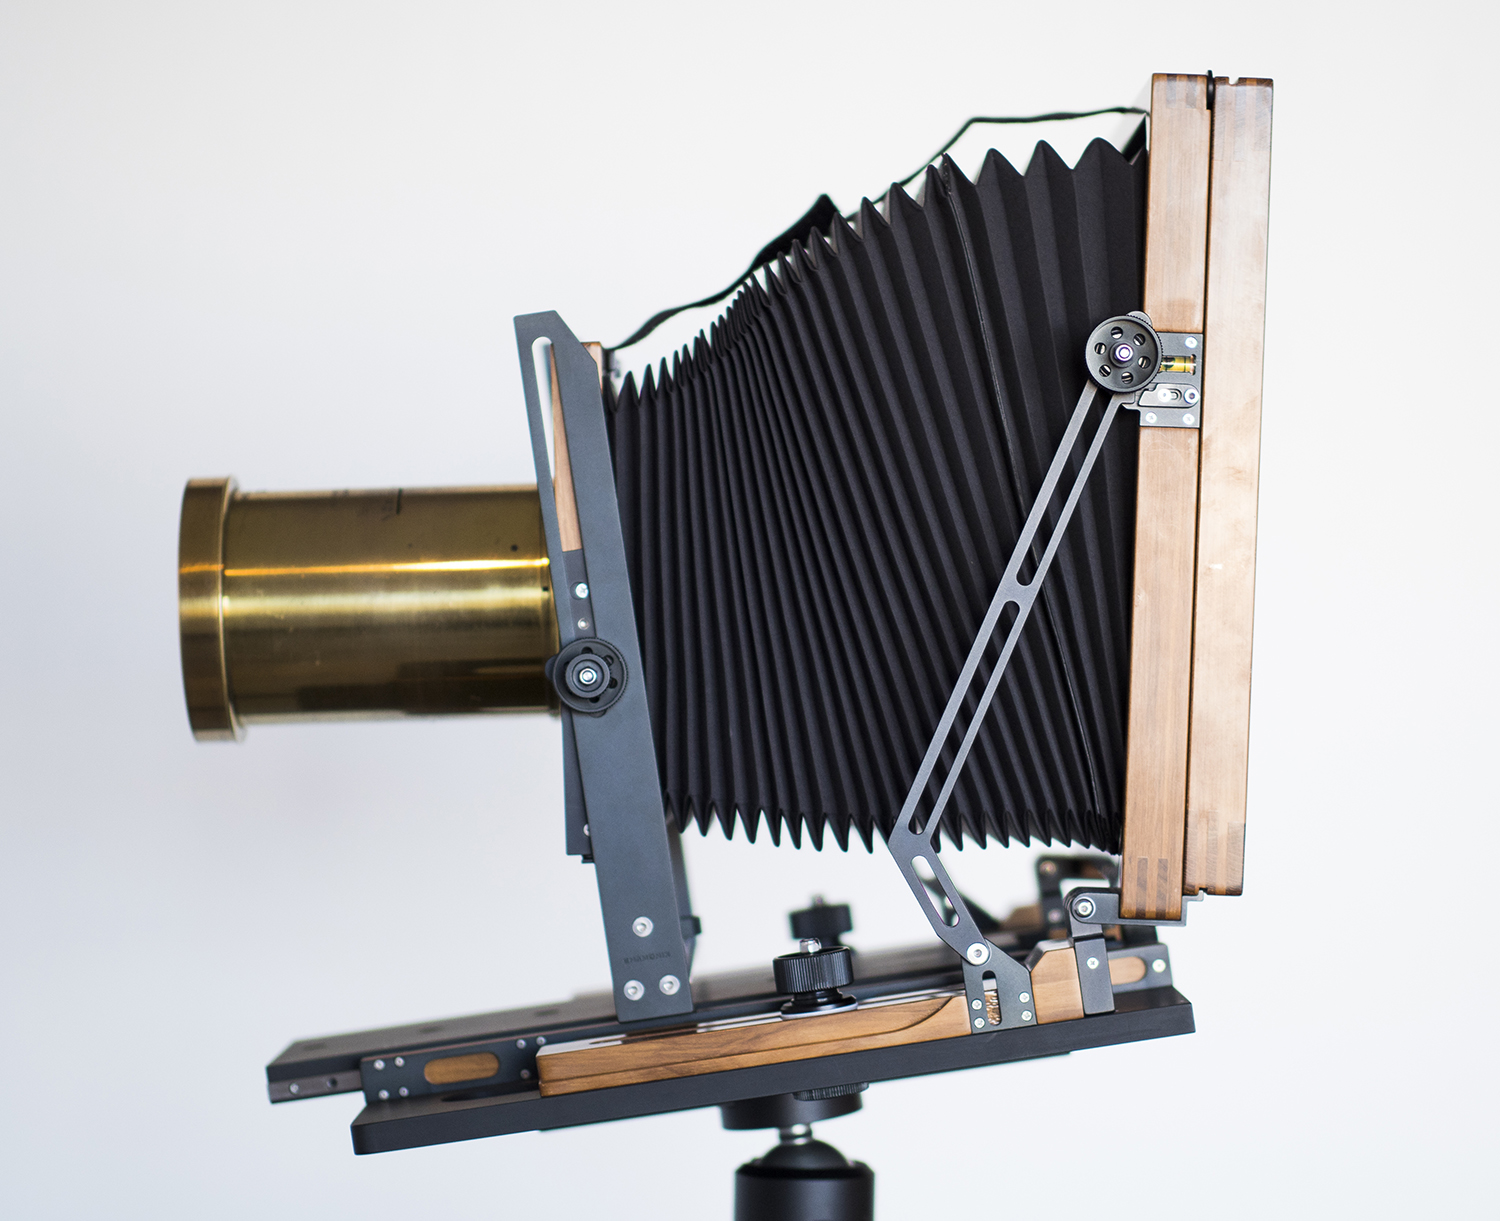 Large Format Camera with Antique Lens